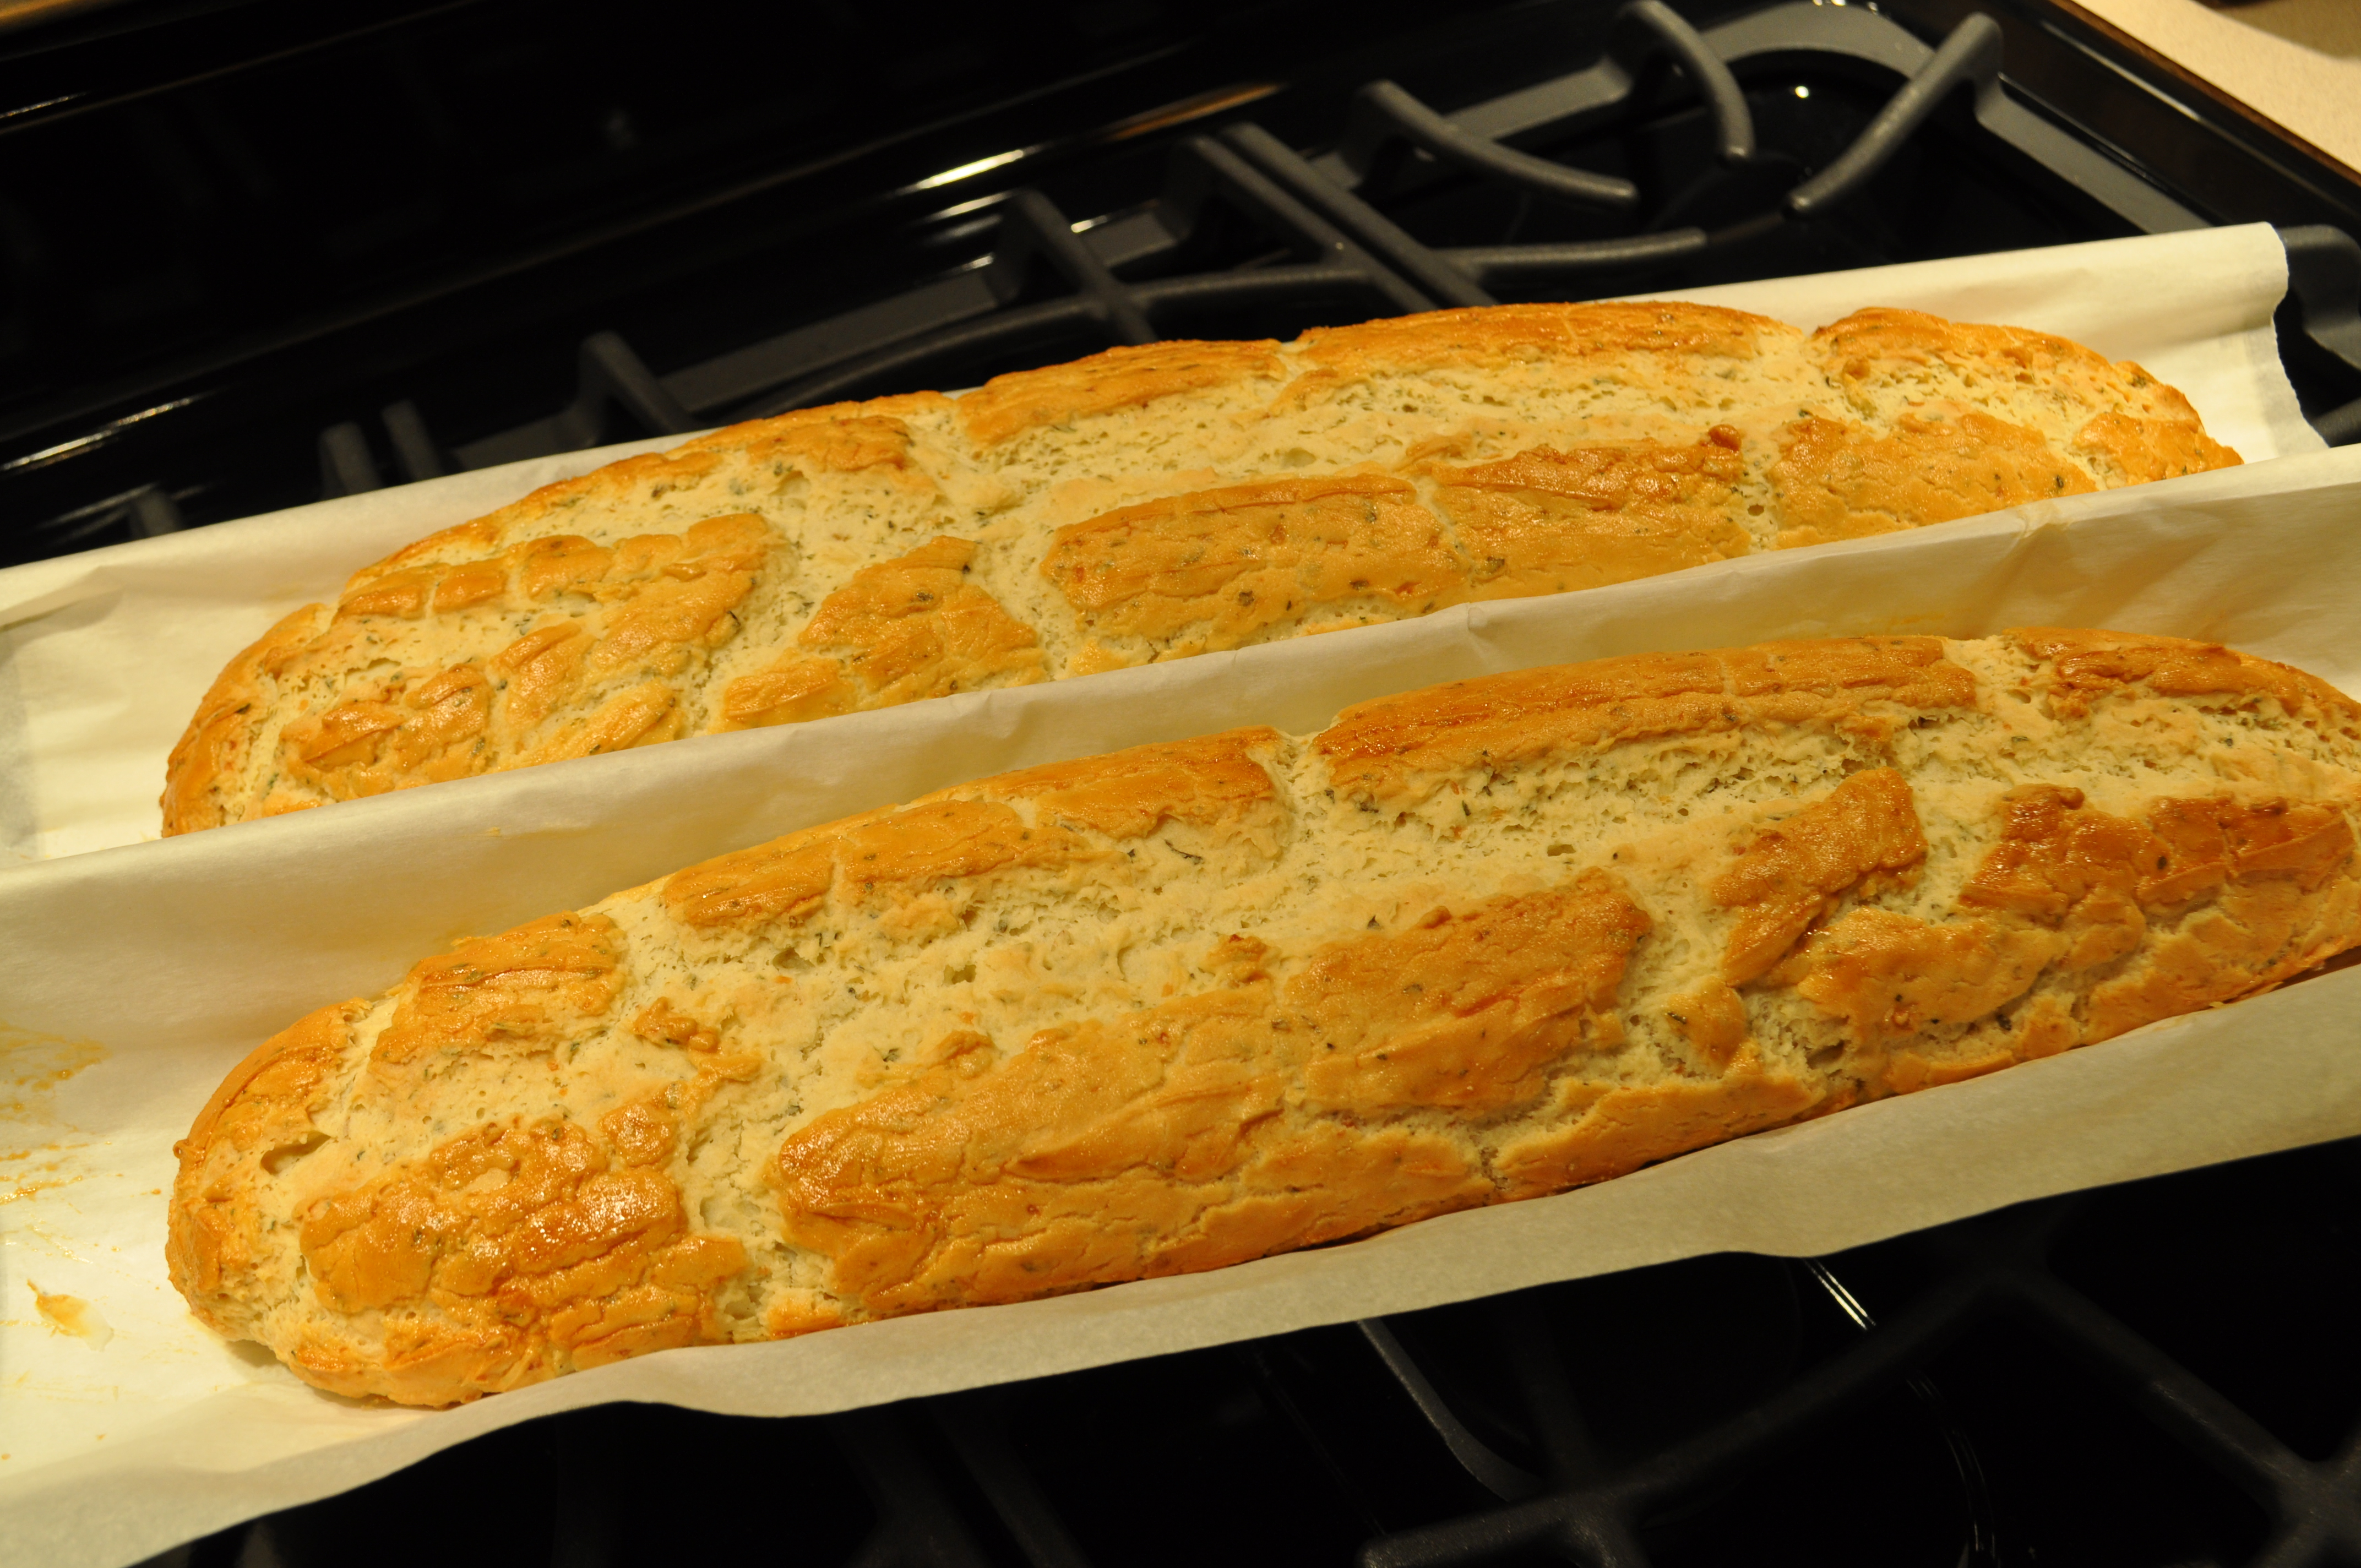 Gluten Free Pantry's French Bread